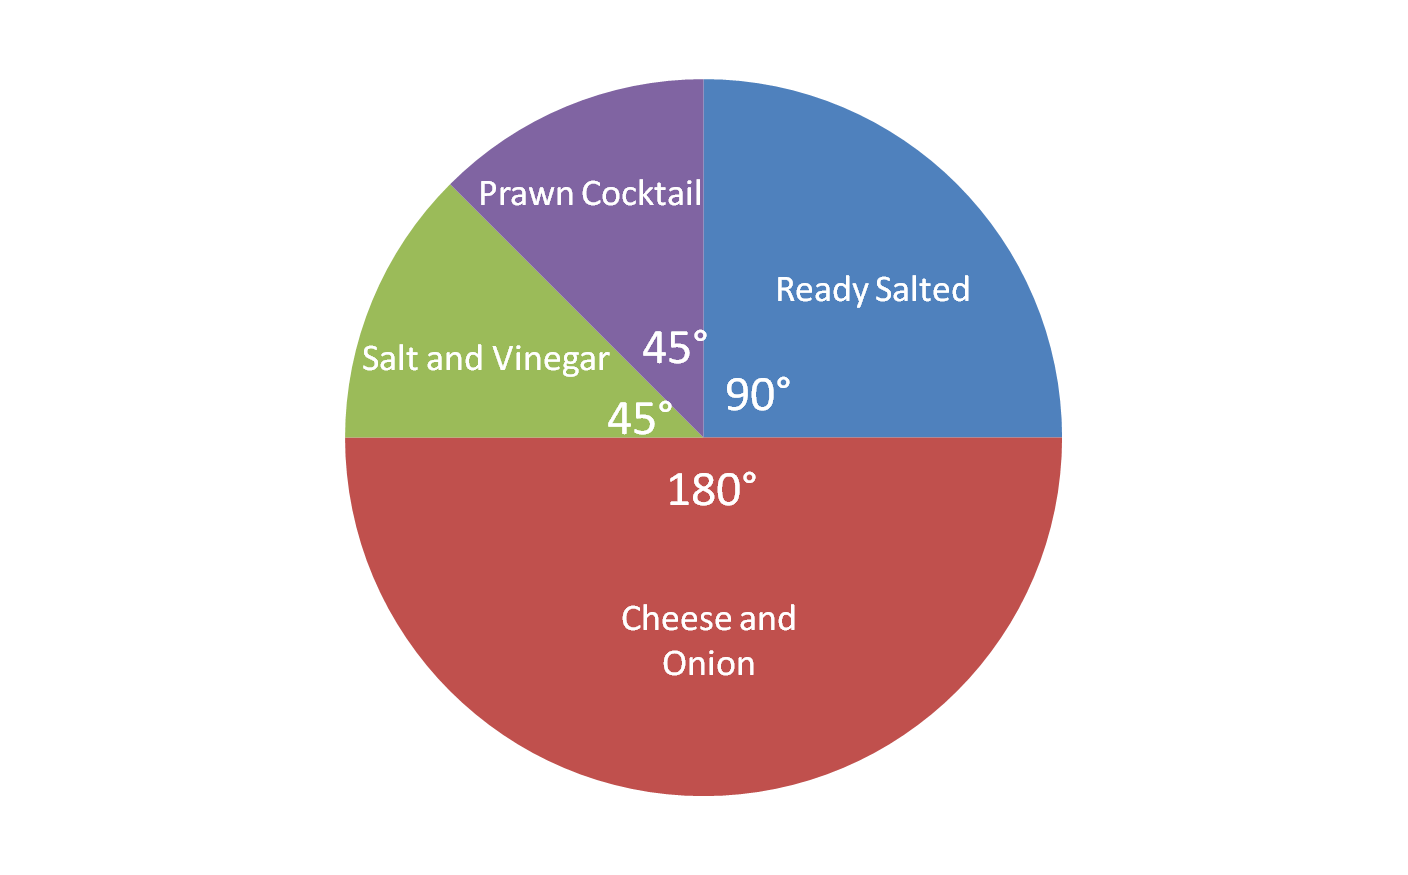 Ratio And Proportion Reading A Pie Chart 1